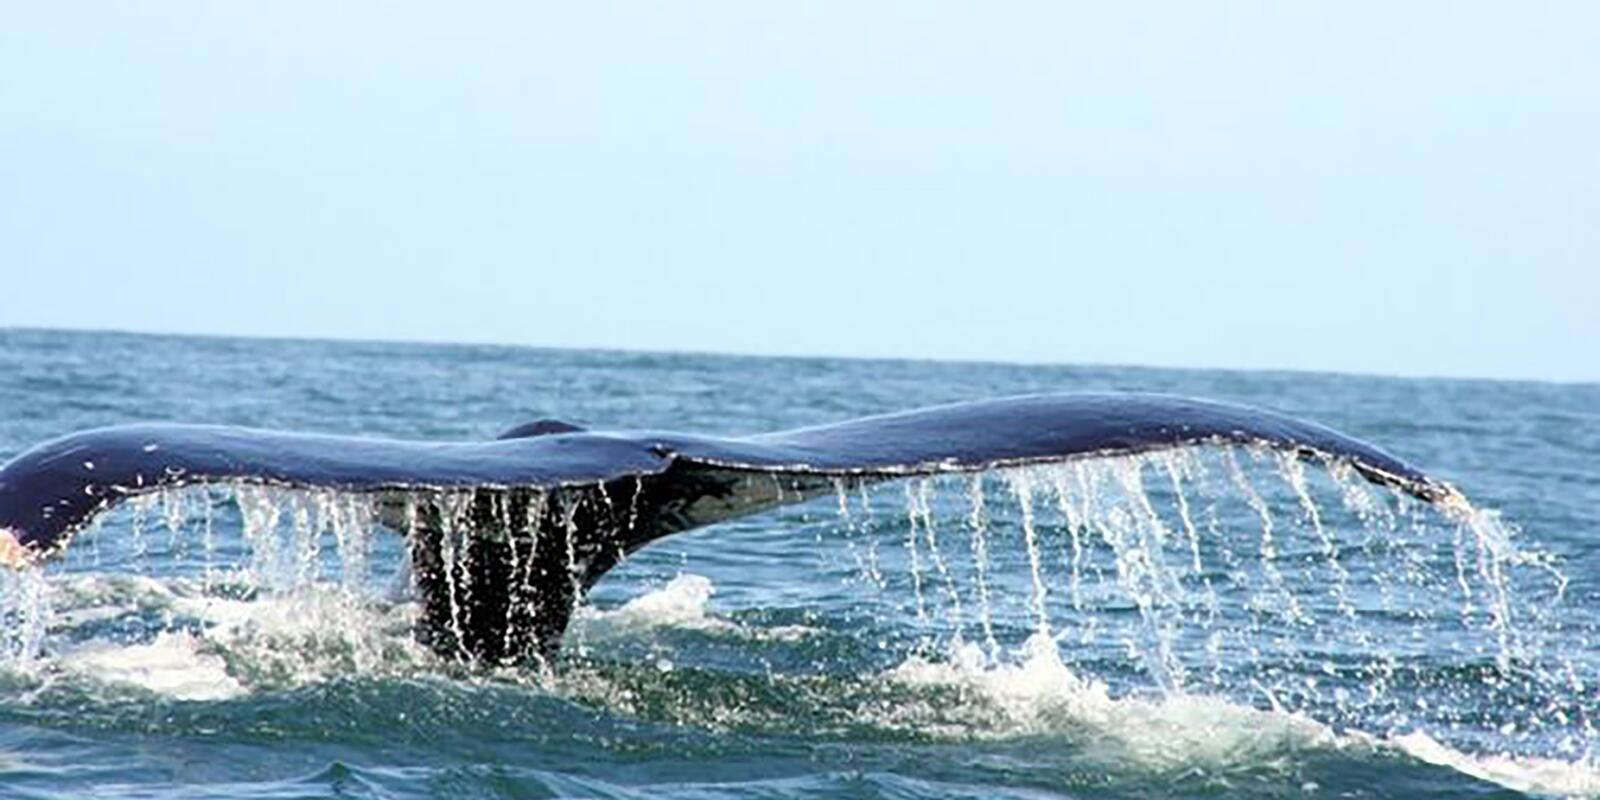 Whales, manta rays, turtles ... in the Sea of Cortez